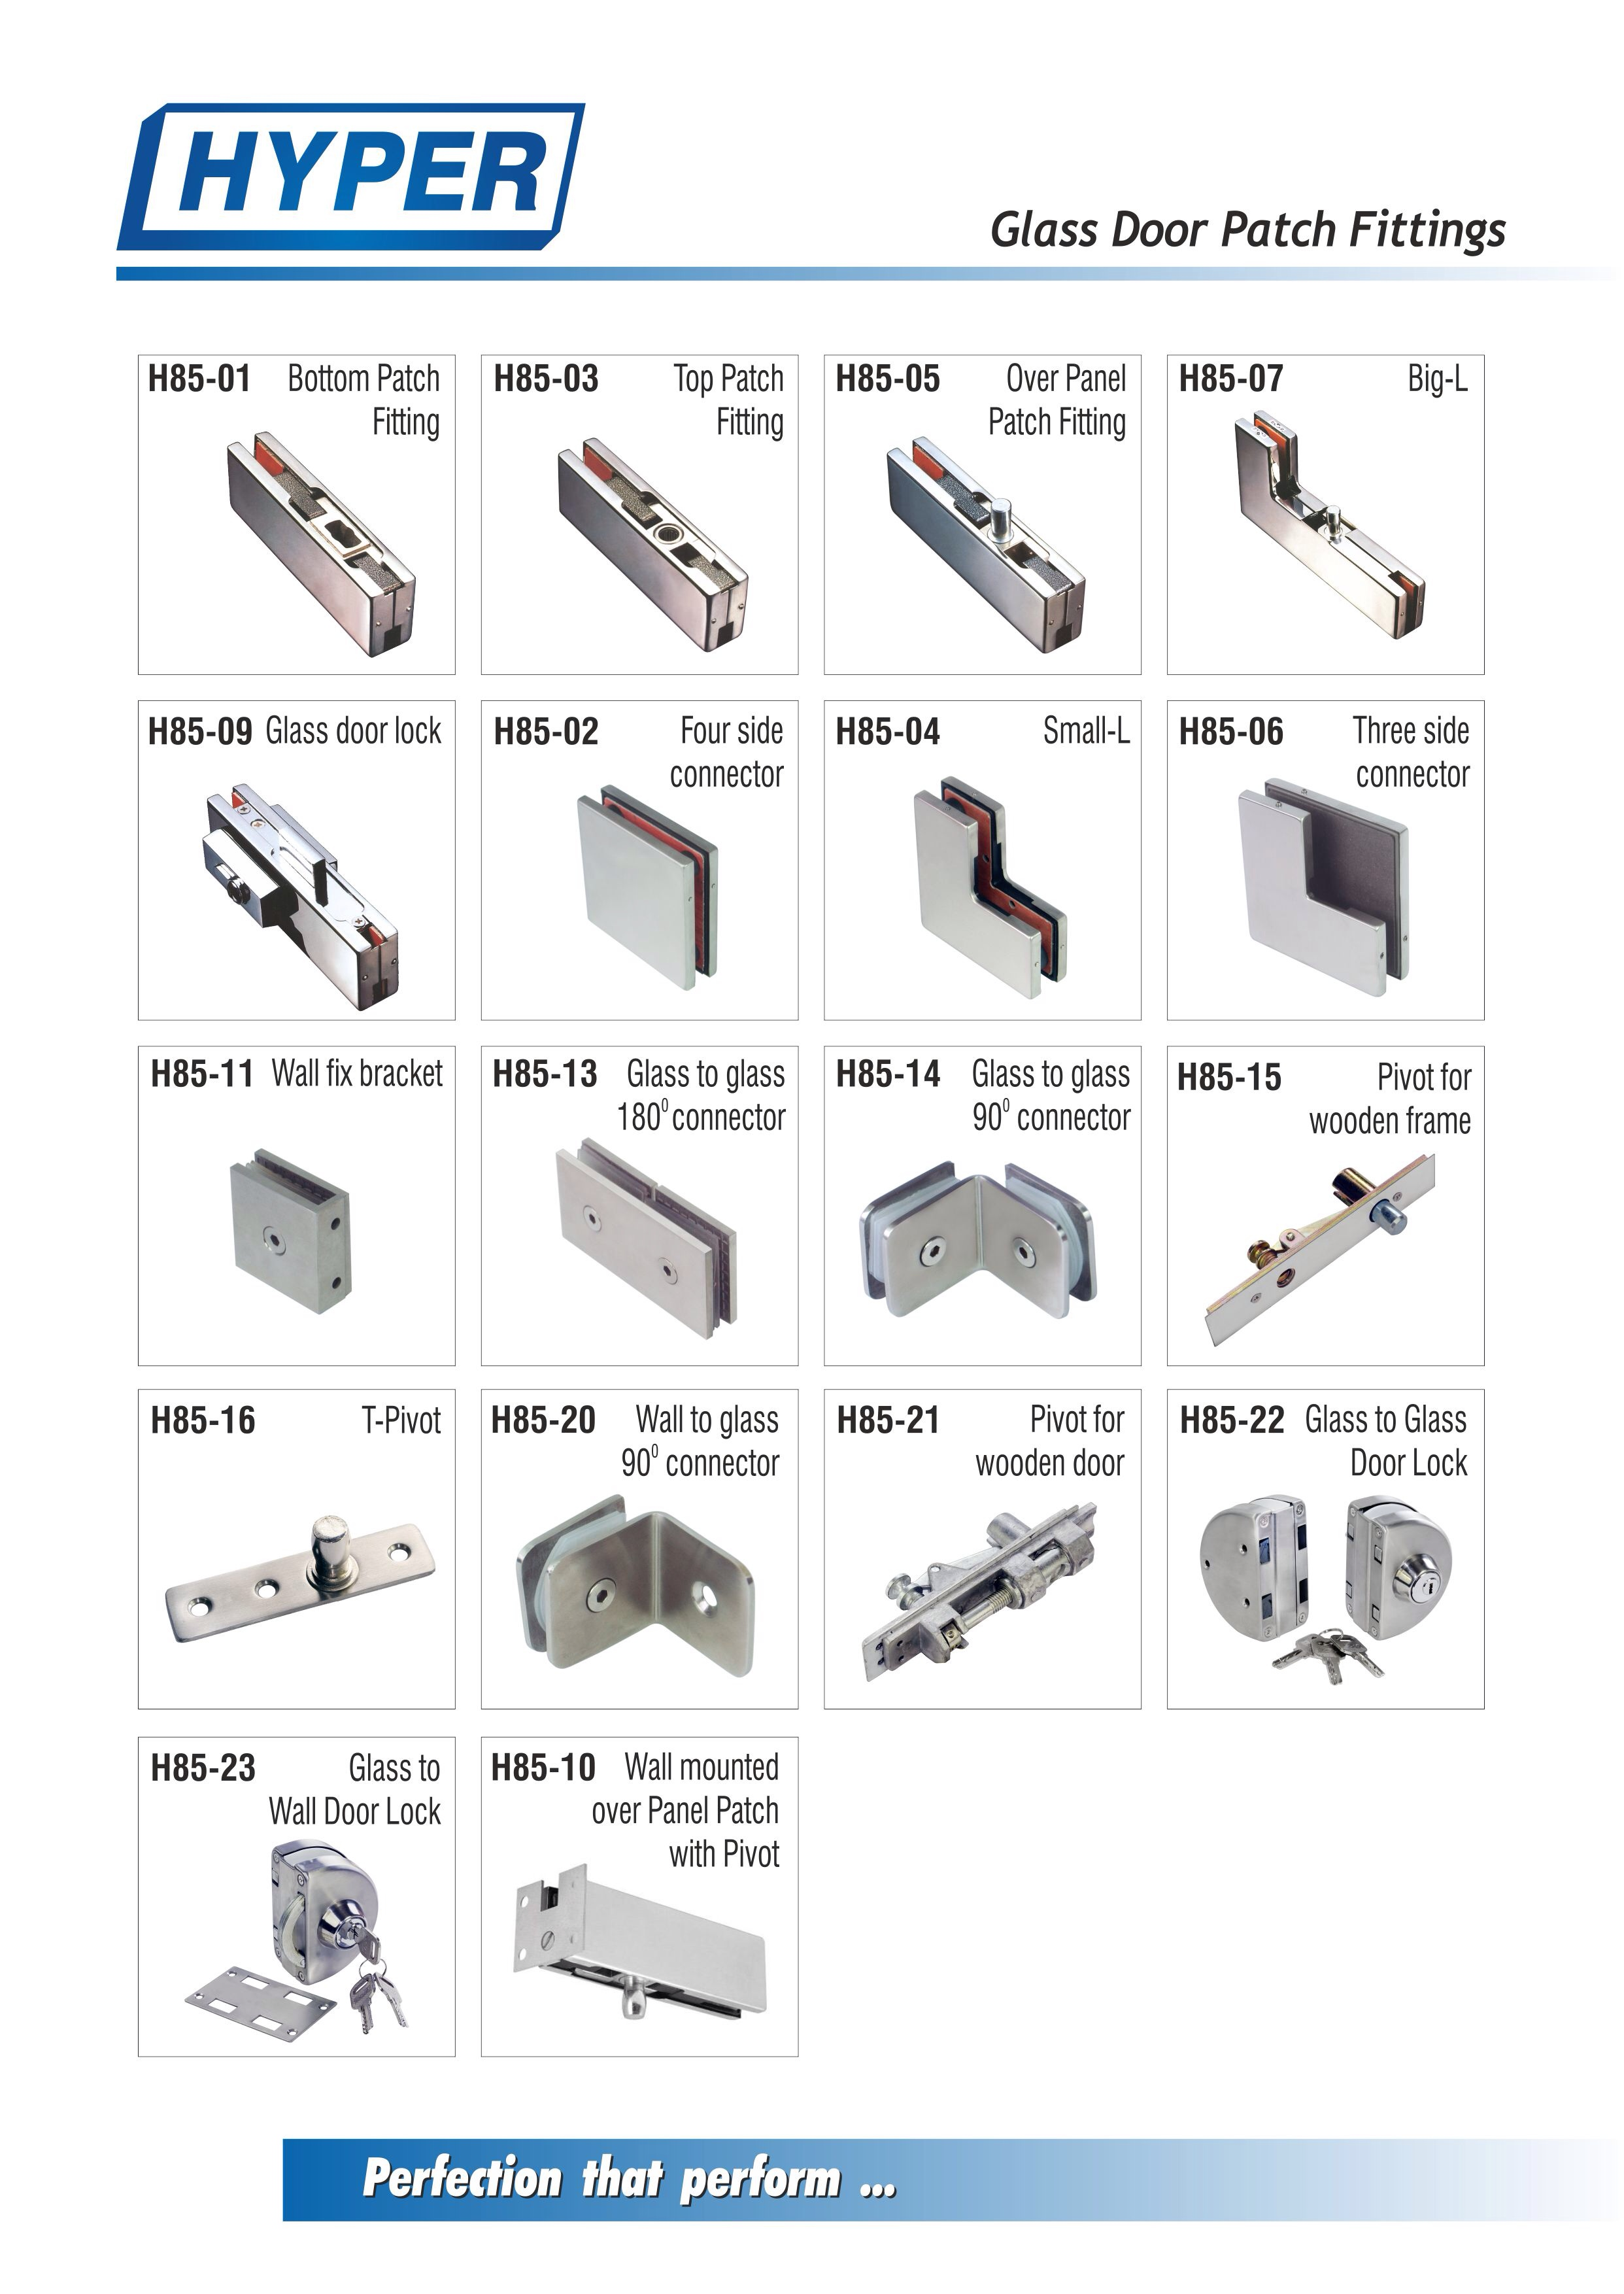 Patch fittings typical application for glass door with patch fittings - Glass Door Patch Fittings Admin 2015 01 22t08 06 36 00